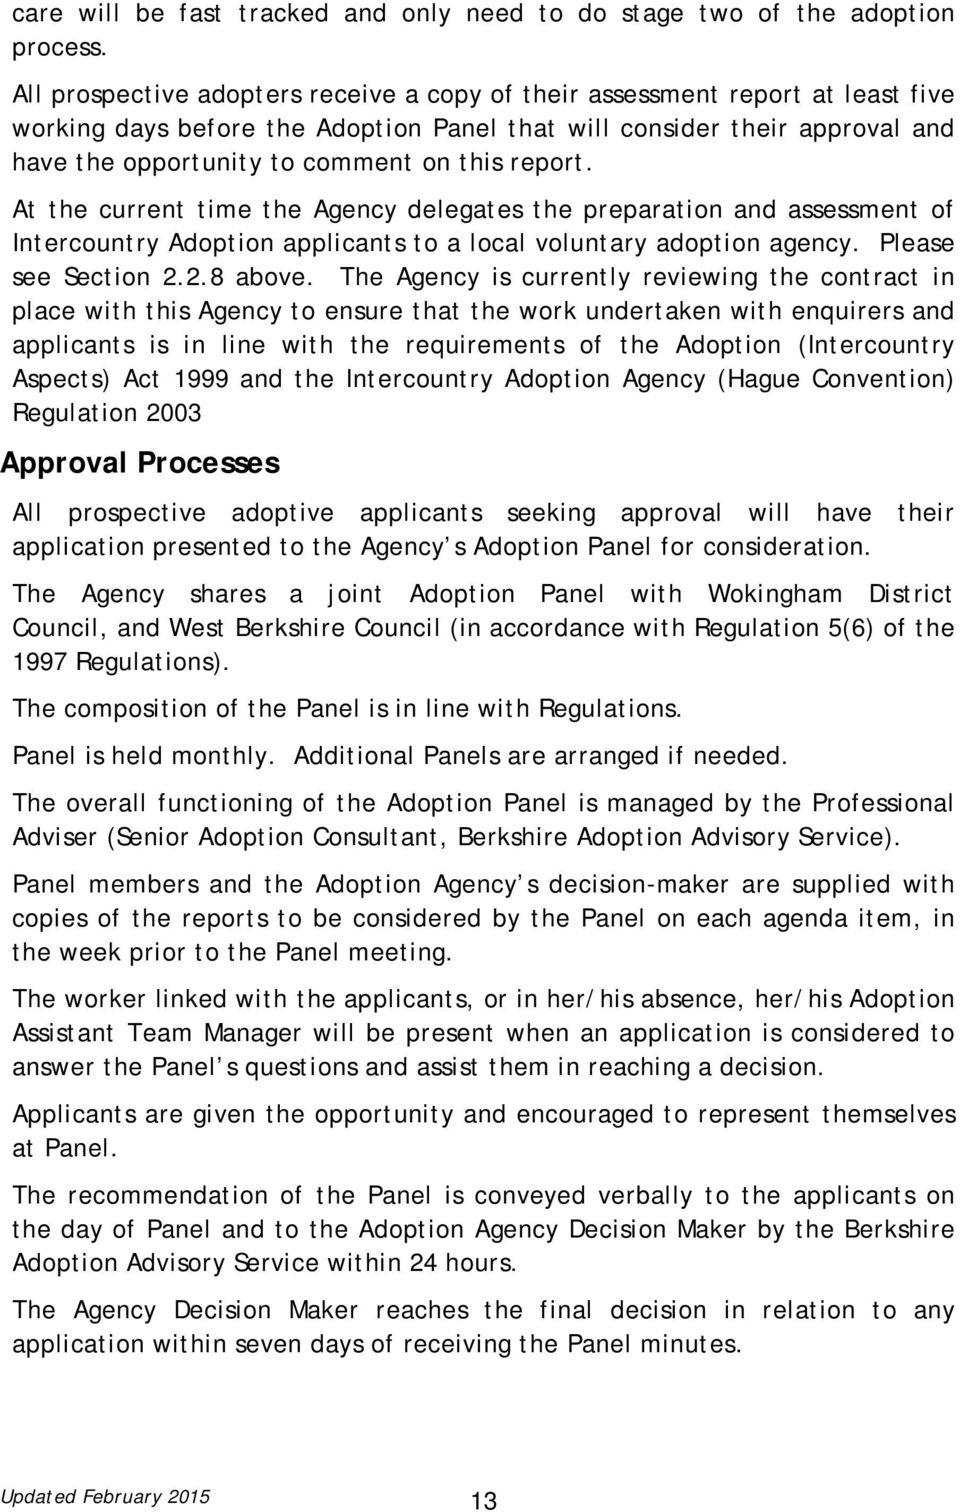 report. At the current time the Agency delegates the preparation and assessment of Intercountry Adoption applicants to a local voluntary adoption agency. Please see Section 2.2.8 above.